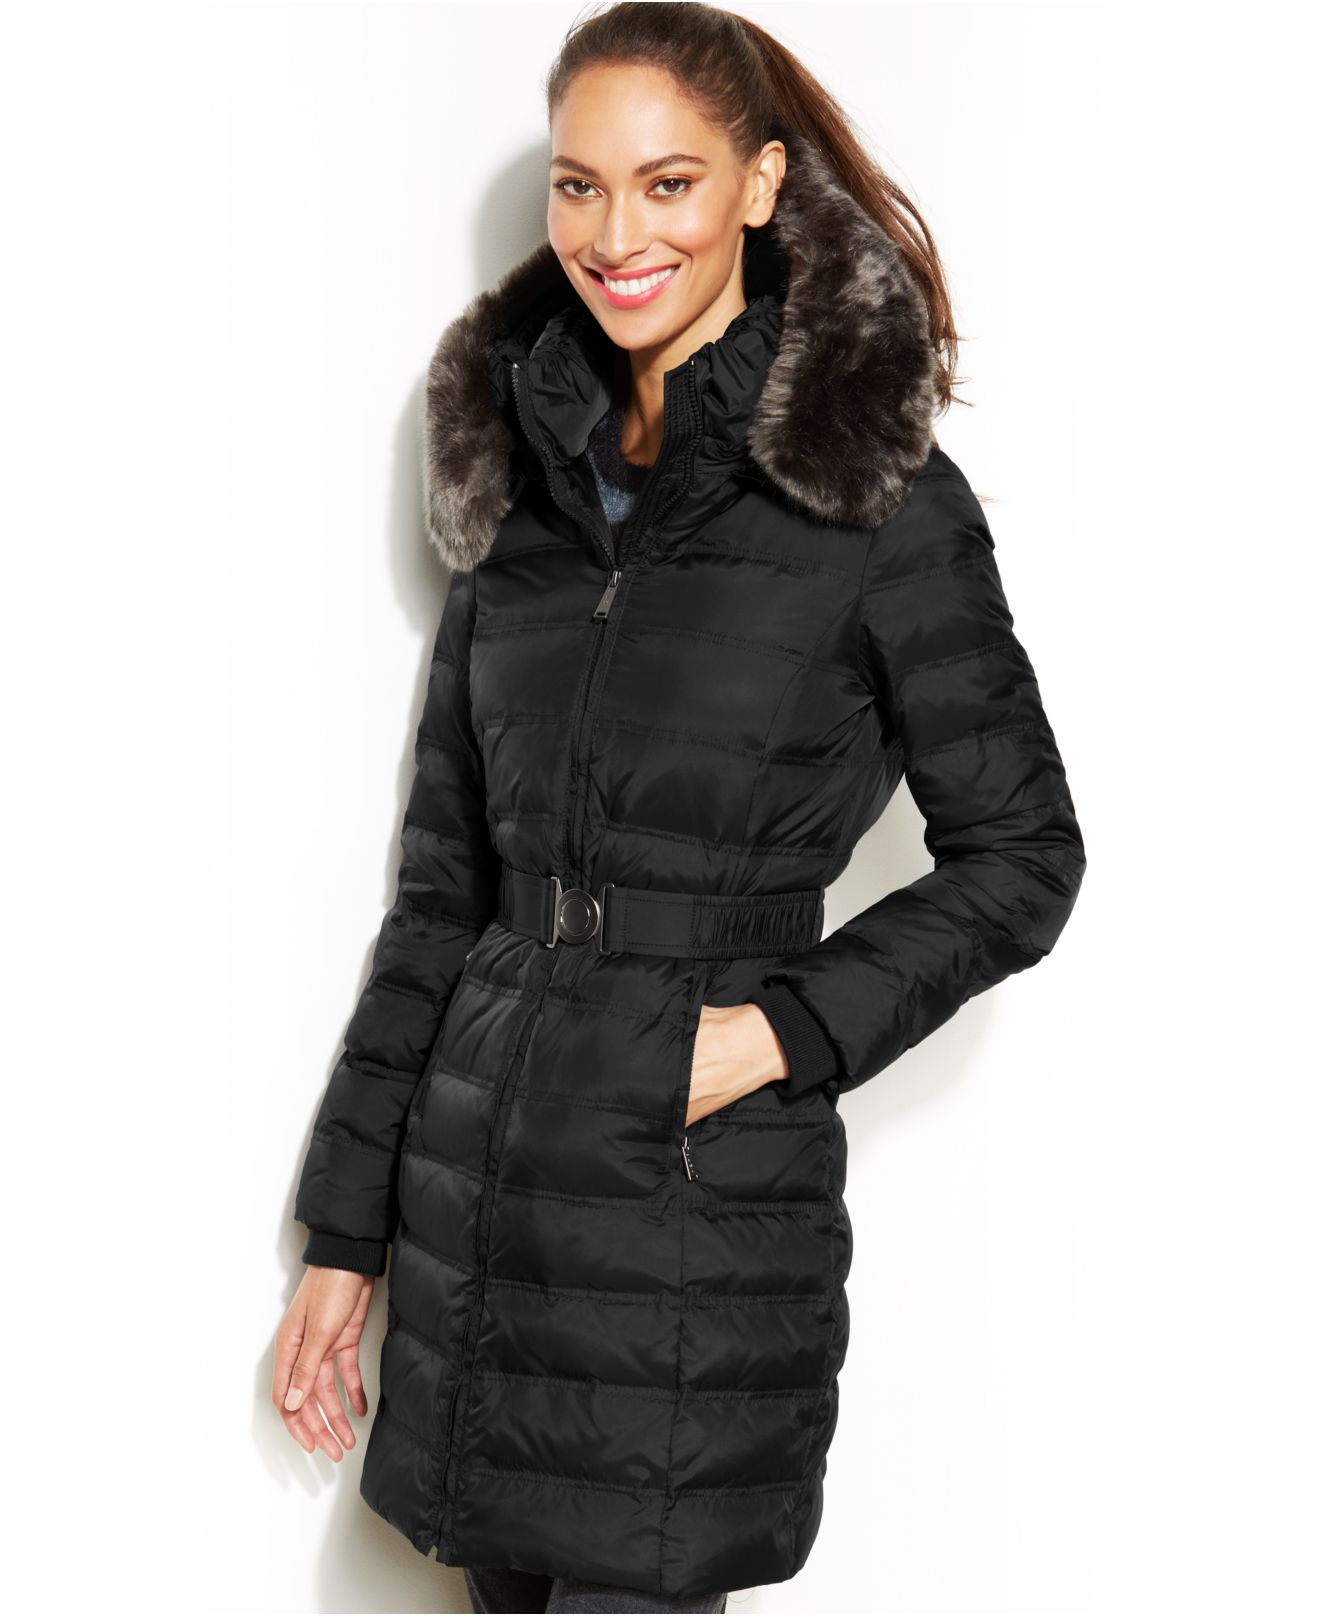 Dkny Hooded Faux-Fur-Trim Belted Down Puffer Coat in Black | Lyst